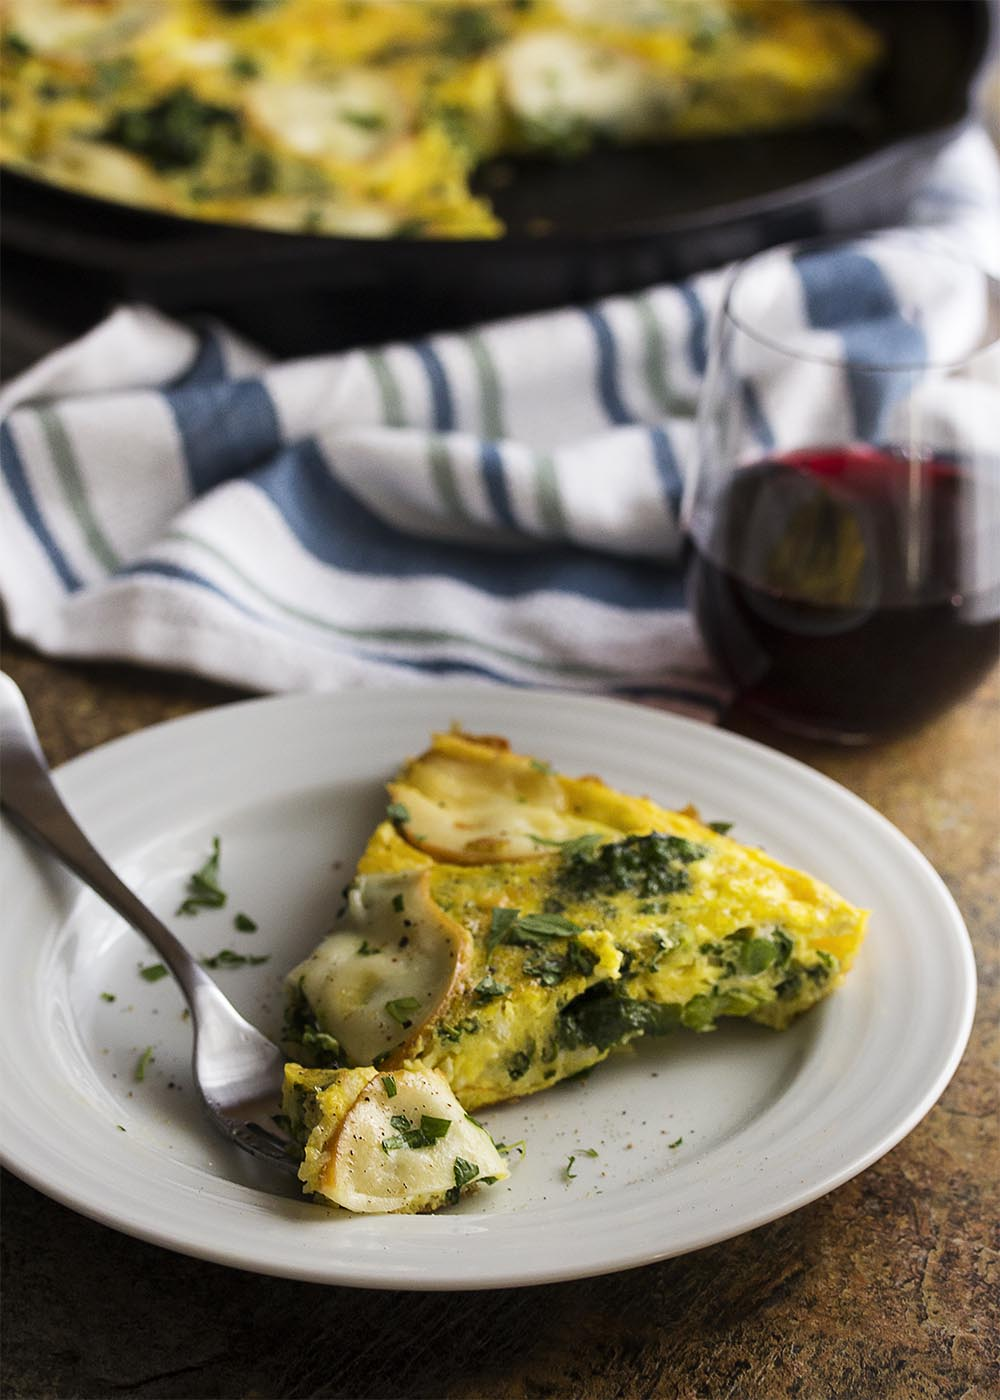 Healthy, easy, and quick! This broccoli rabe and smoked mozzarella frittata is packed full of flavor and cooks in only 15 minutes. Pull out your cast iron pan and make some dinner. | justalittlebitofbacon.com